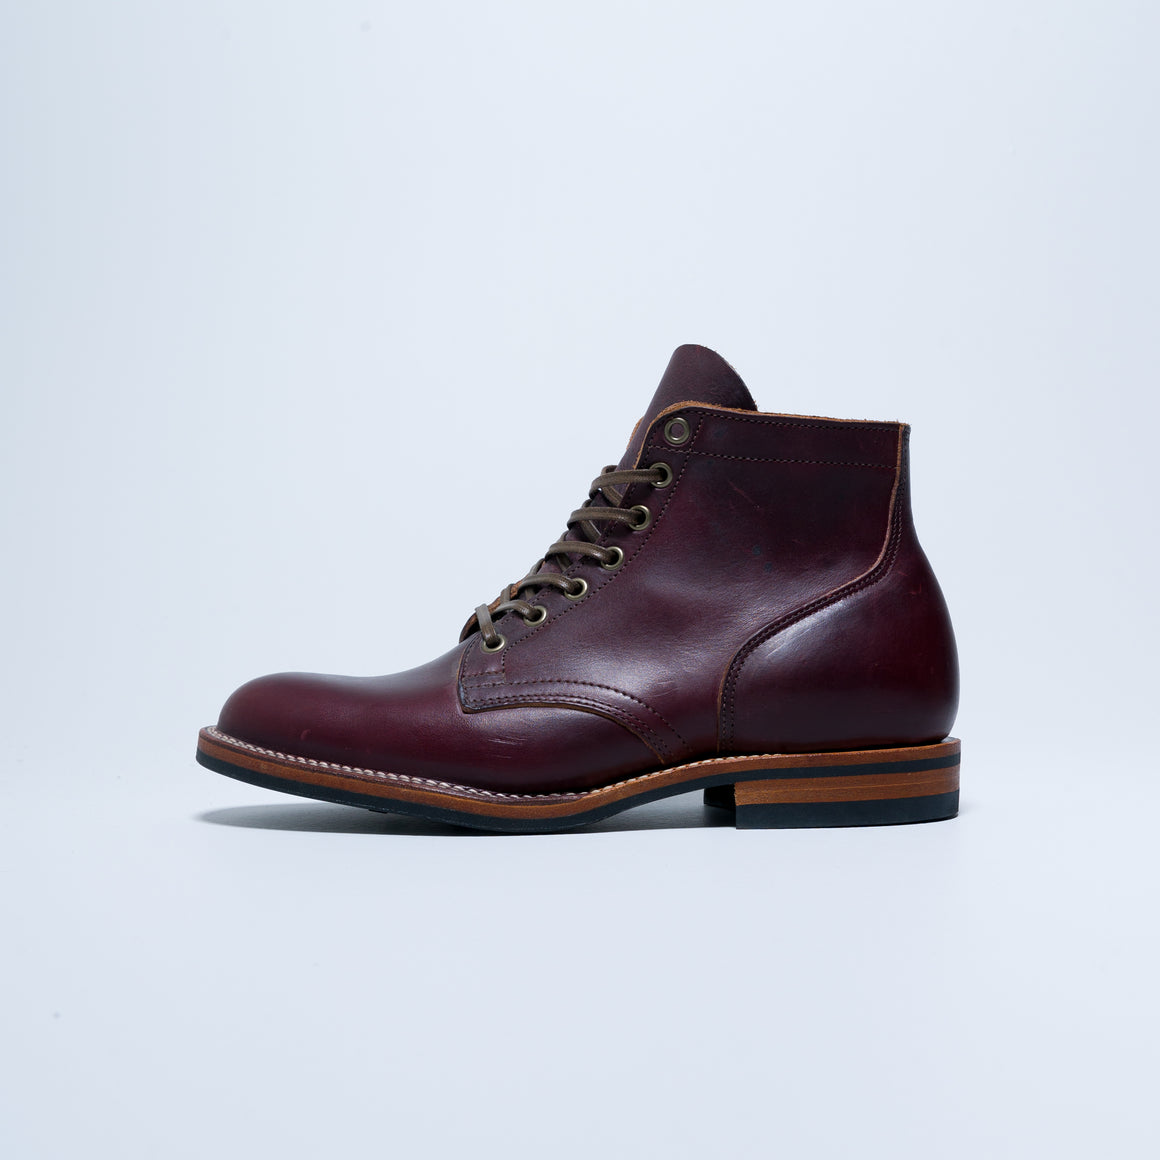 Service Boot - Colour 8 Chromexcel - Up There